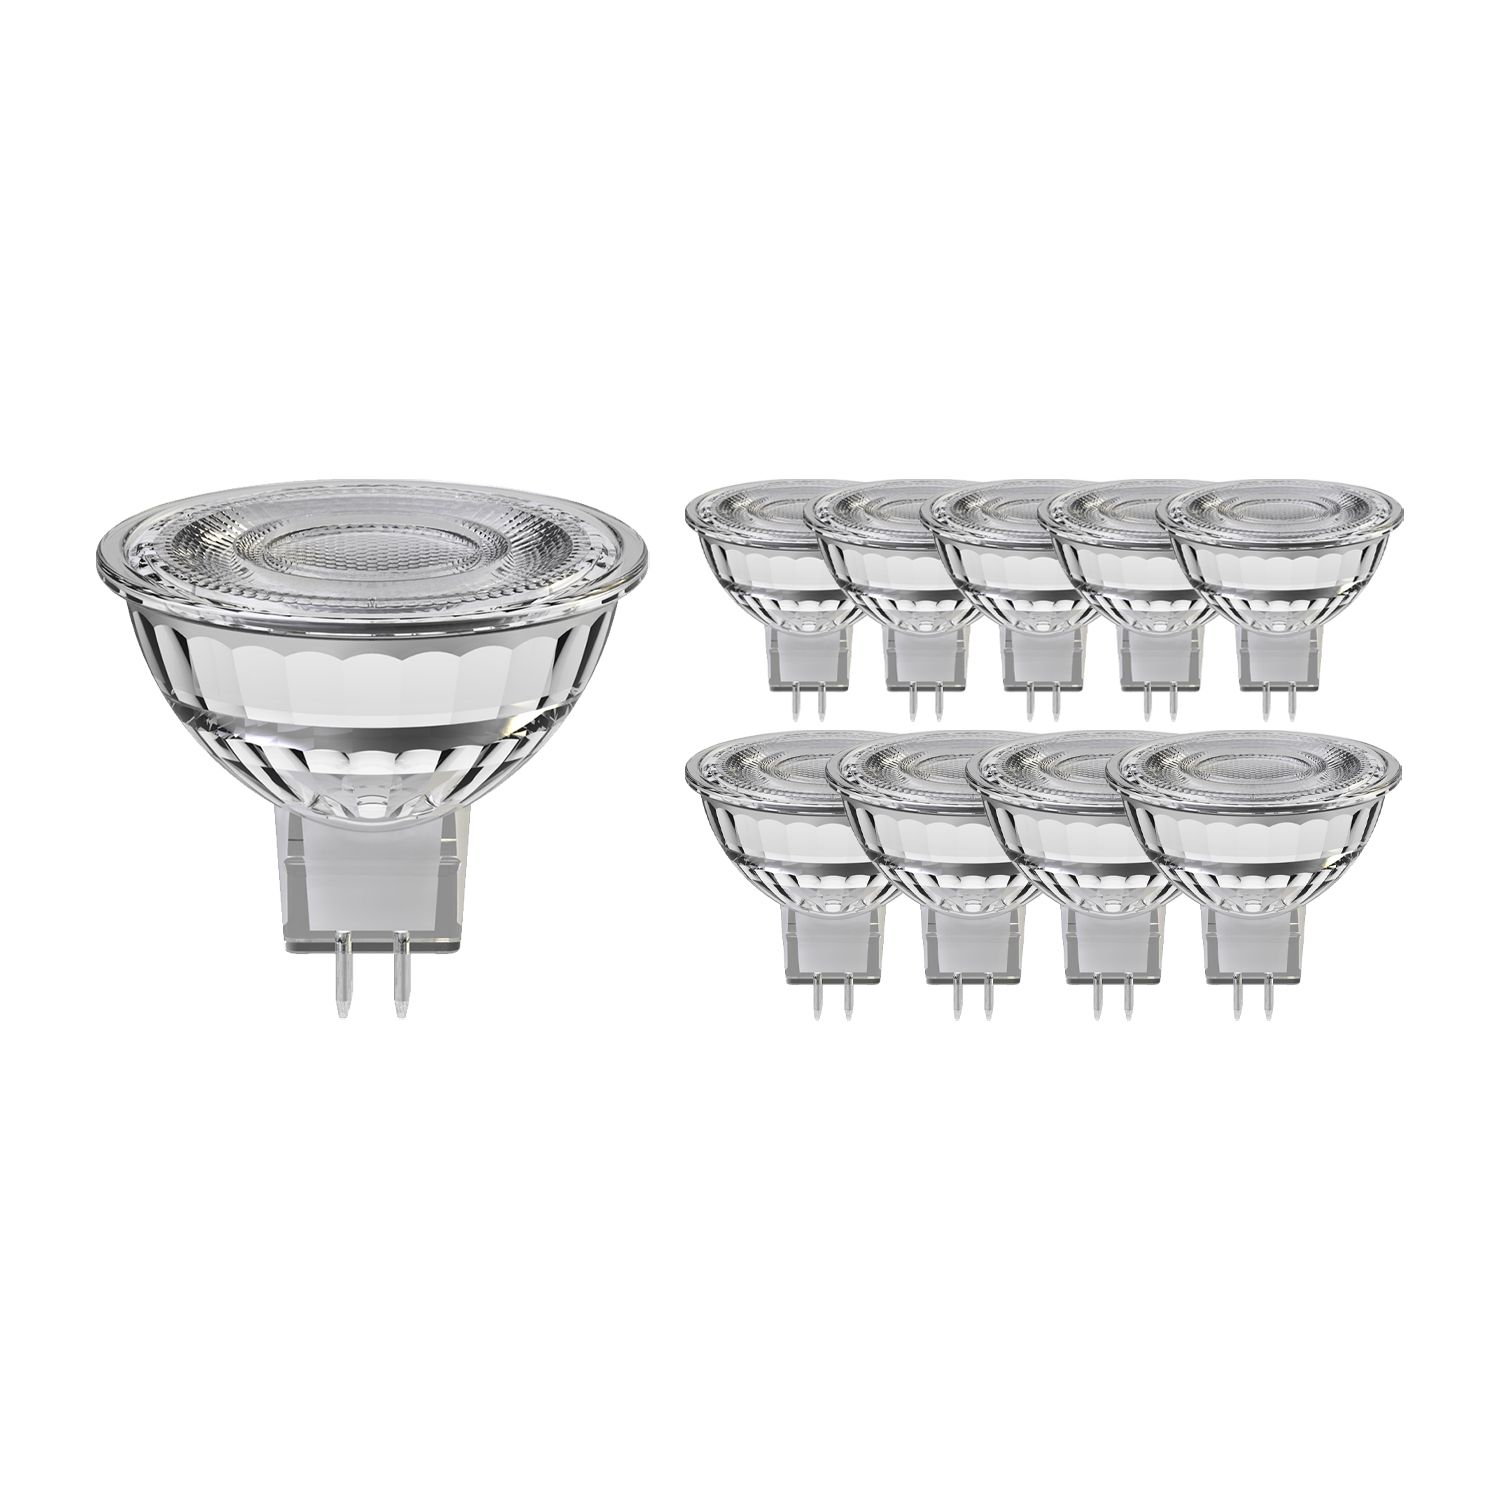 Multipack 10x Noxion LED Spot GU5.3 8W 830 60D 660lm | Dimmable - Warm White - Replaces 50W